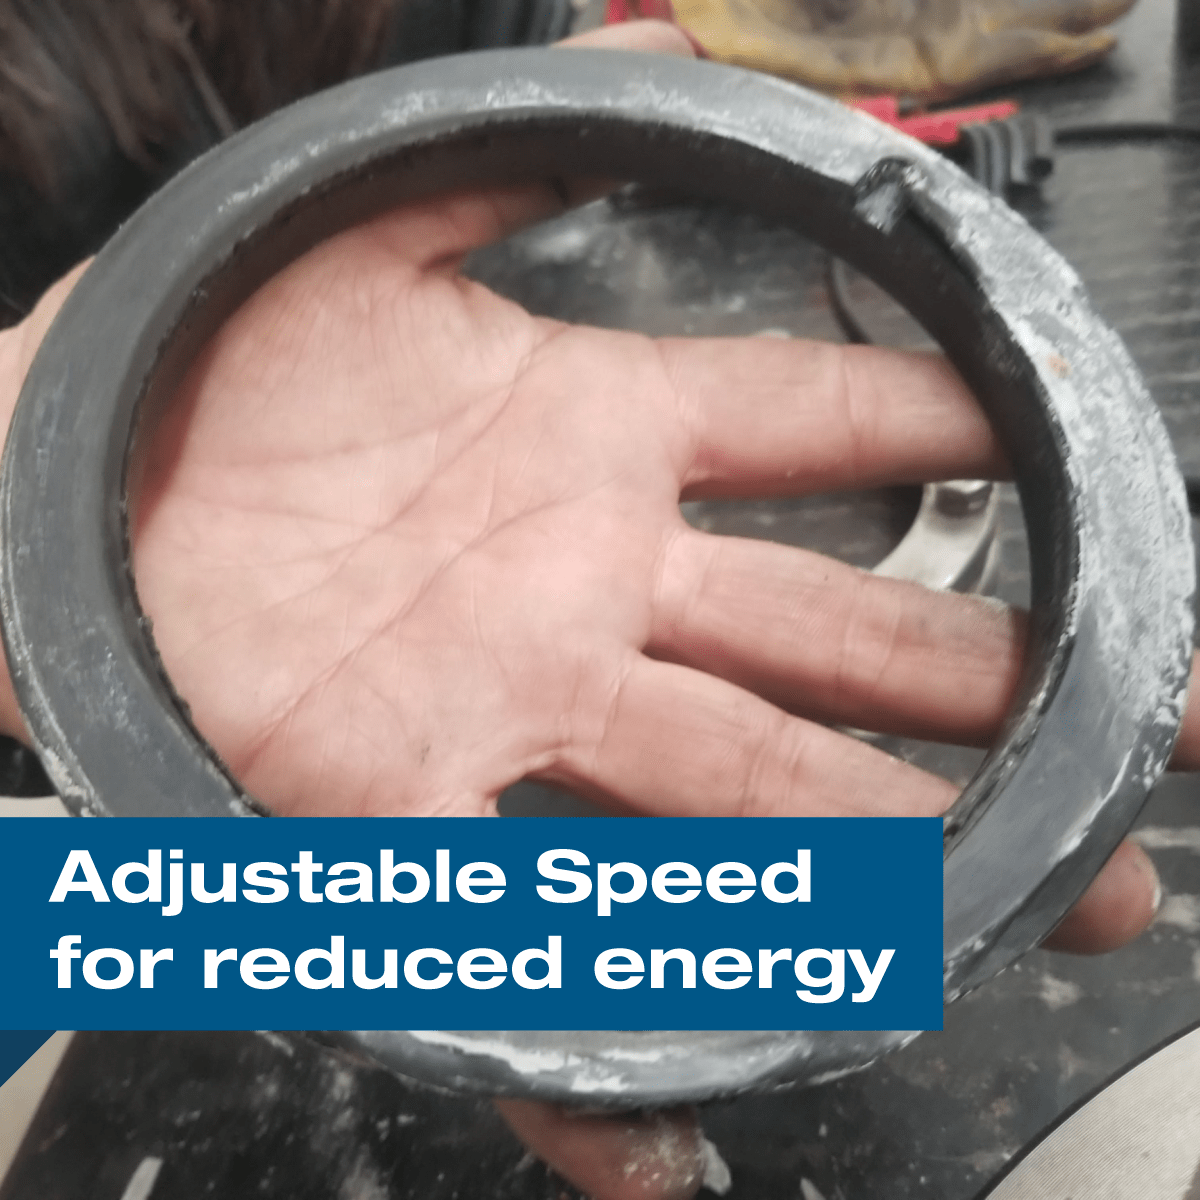 Adjustable Speed Pumping Applications for Reduced Energy Consumption